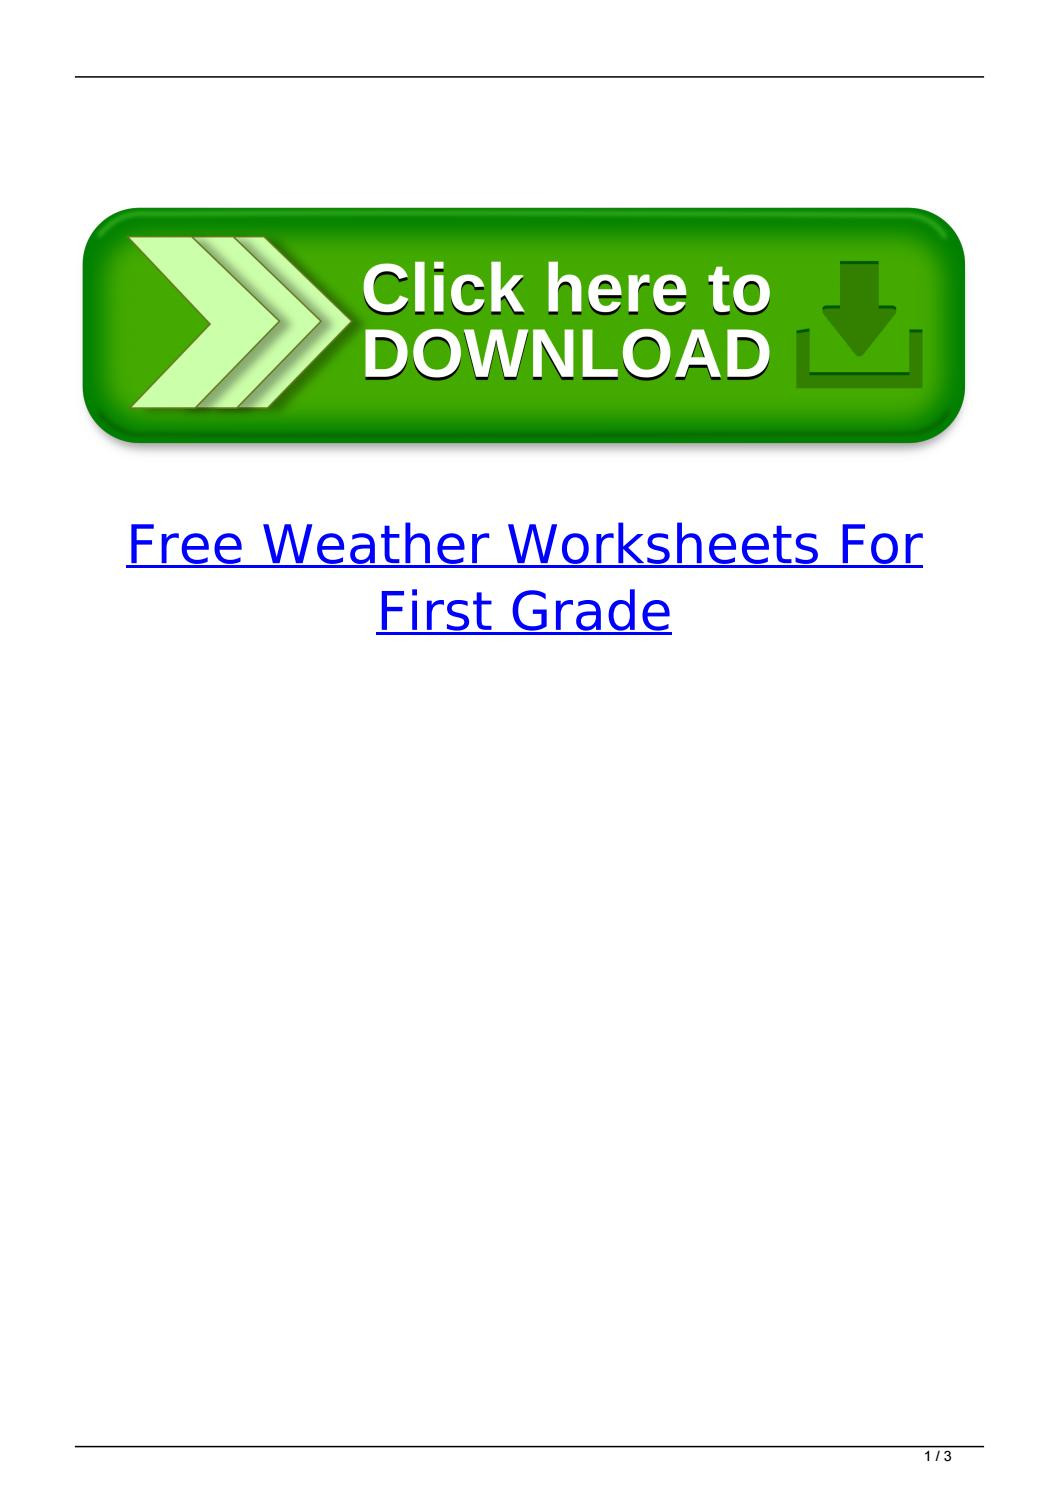 Weather Worksheets for First Graders Free Weather Worksheets for First Grade by Franitalor issuu